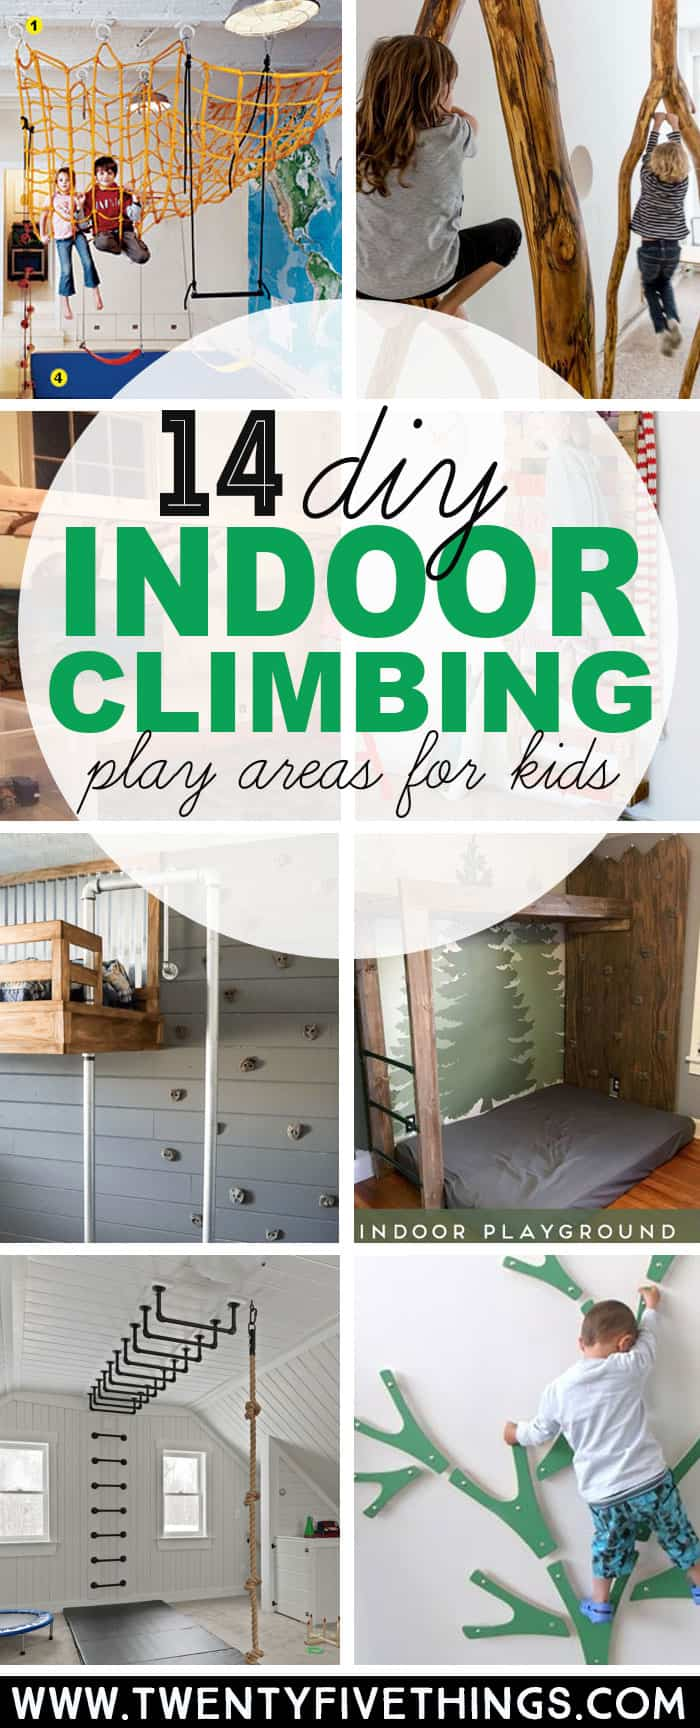 Love these ideas for DIY Climbing Spaces for Kids Indoor Play. I can definitely see myself using these ideas for my kids bedroom or playroom to give them something to do on cold and rainy days. #kidsactivities #DIY #indooractivities #play